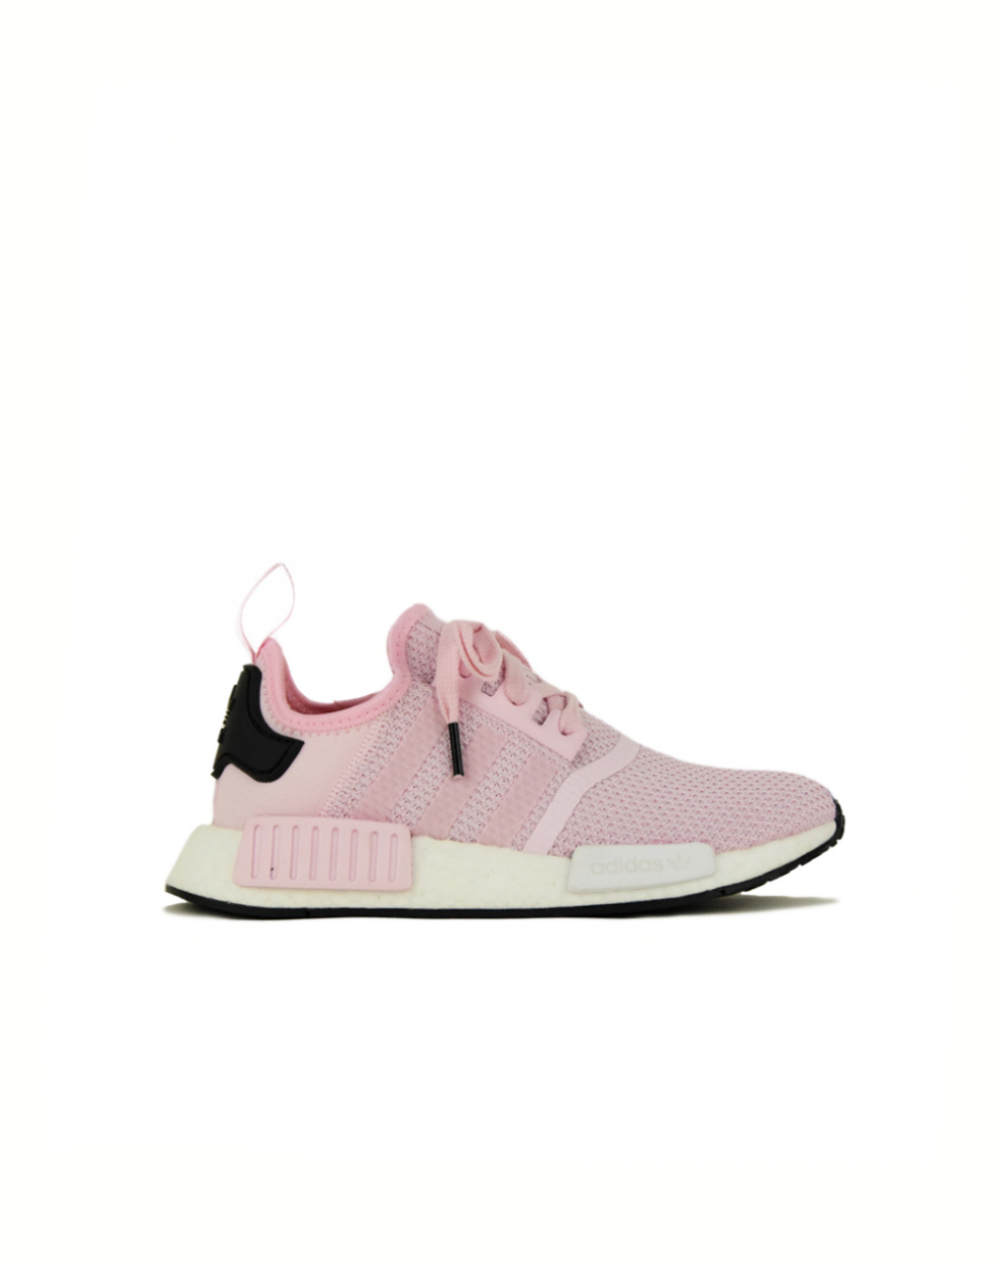 new product 1cc42 4eb18 Adidas NMD_R1 Pink (B37648) | Eleven